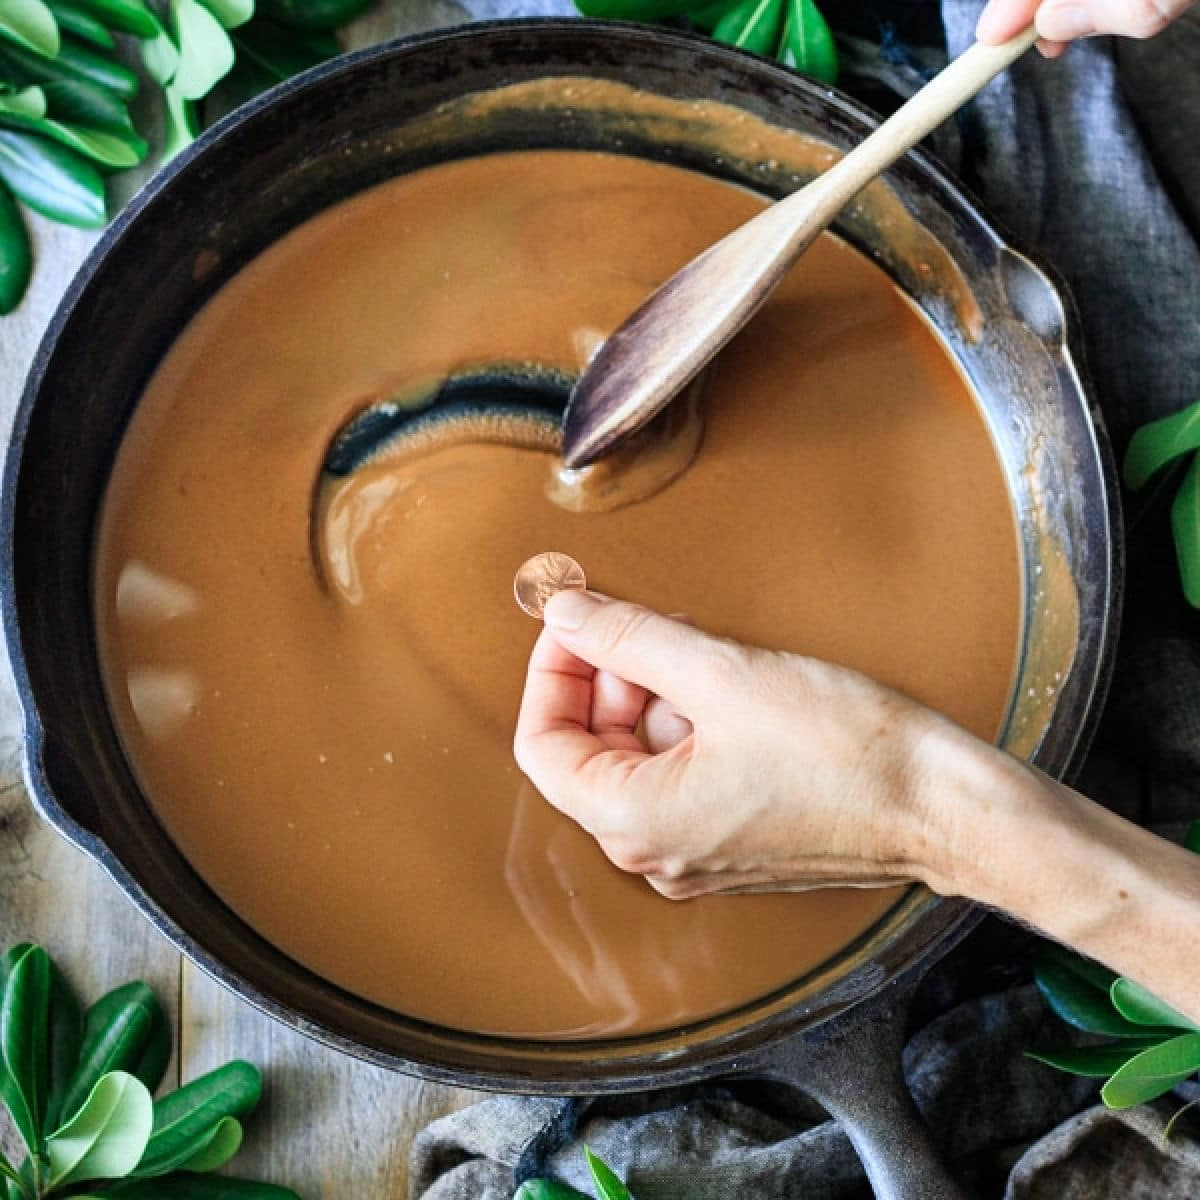 making a roux in a cast iron pot with a hand showing the color against a penny